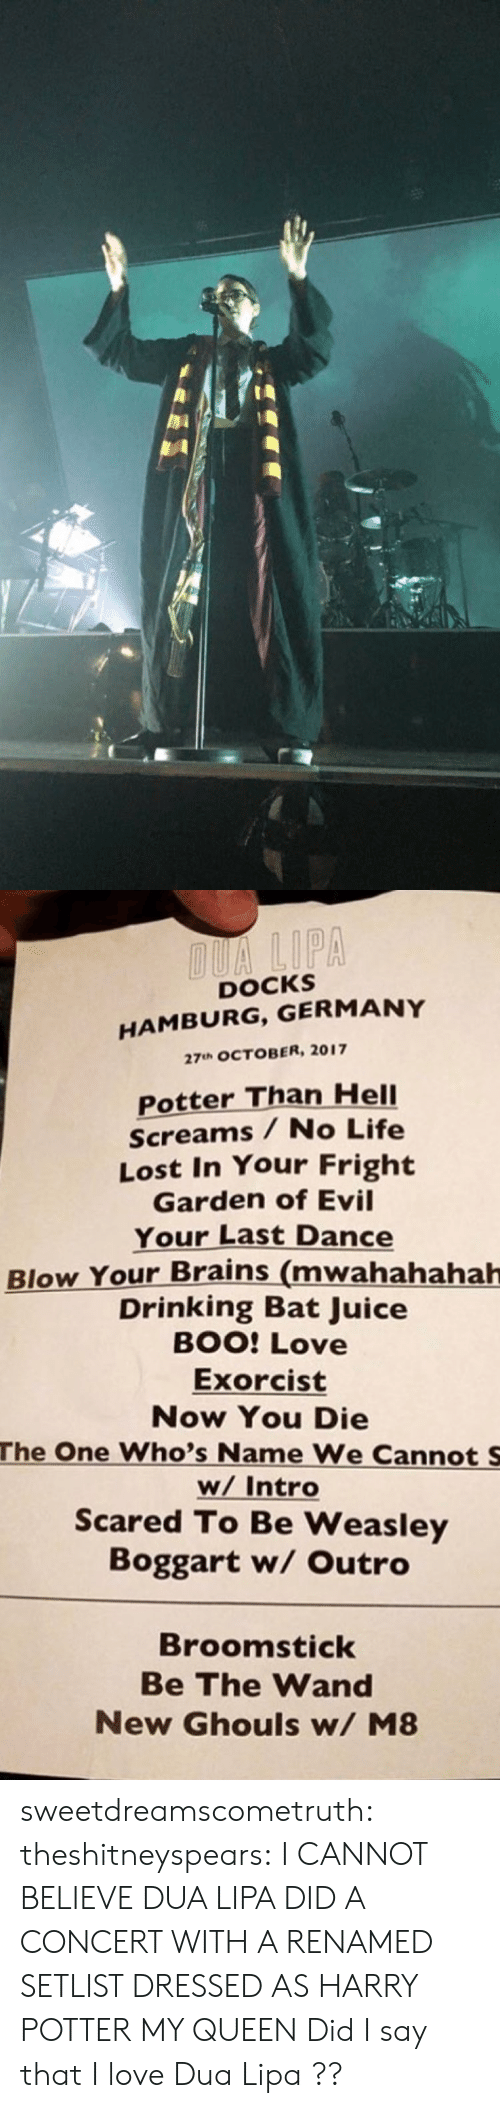 ghouls: DOCKS  HAMBURG, GERMANY  27uh OCTOBER, 2017  Potter Than HelI  Screams / No Life  Lost In Your Fright  Garden of Evil  Your Last Dance  Blow Your Brains (mwahahahah  Drinking Bat Juice  BOO: Love  Exorcist  Now You Die  The One Who's Name We Cannot S  w/ Intro  Scared To Be Weasley  Boggart w/ Outro  Broomstick  Be The Wand  New Ghouls w/ M8 sweetdreamscometruth: theshitneyspears:  I CANNOT BELIEVE DUA LIPA DID A CONCERT WITH A RENAMED SETLIST DRESSED AS HARRY POTTER MY QUEEN  Did I say that I love Dua Lipa ??